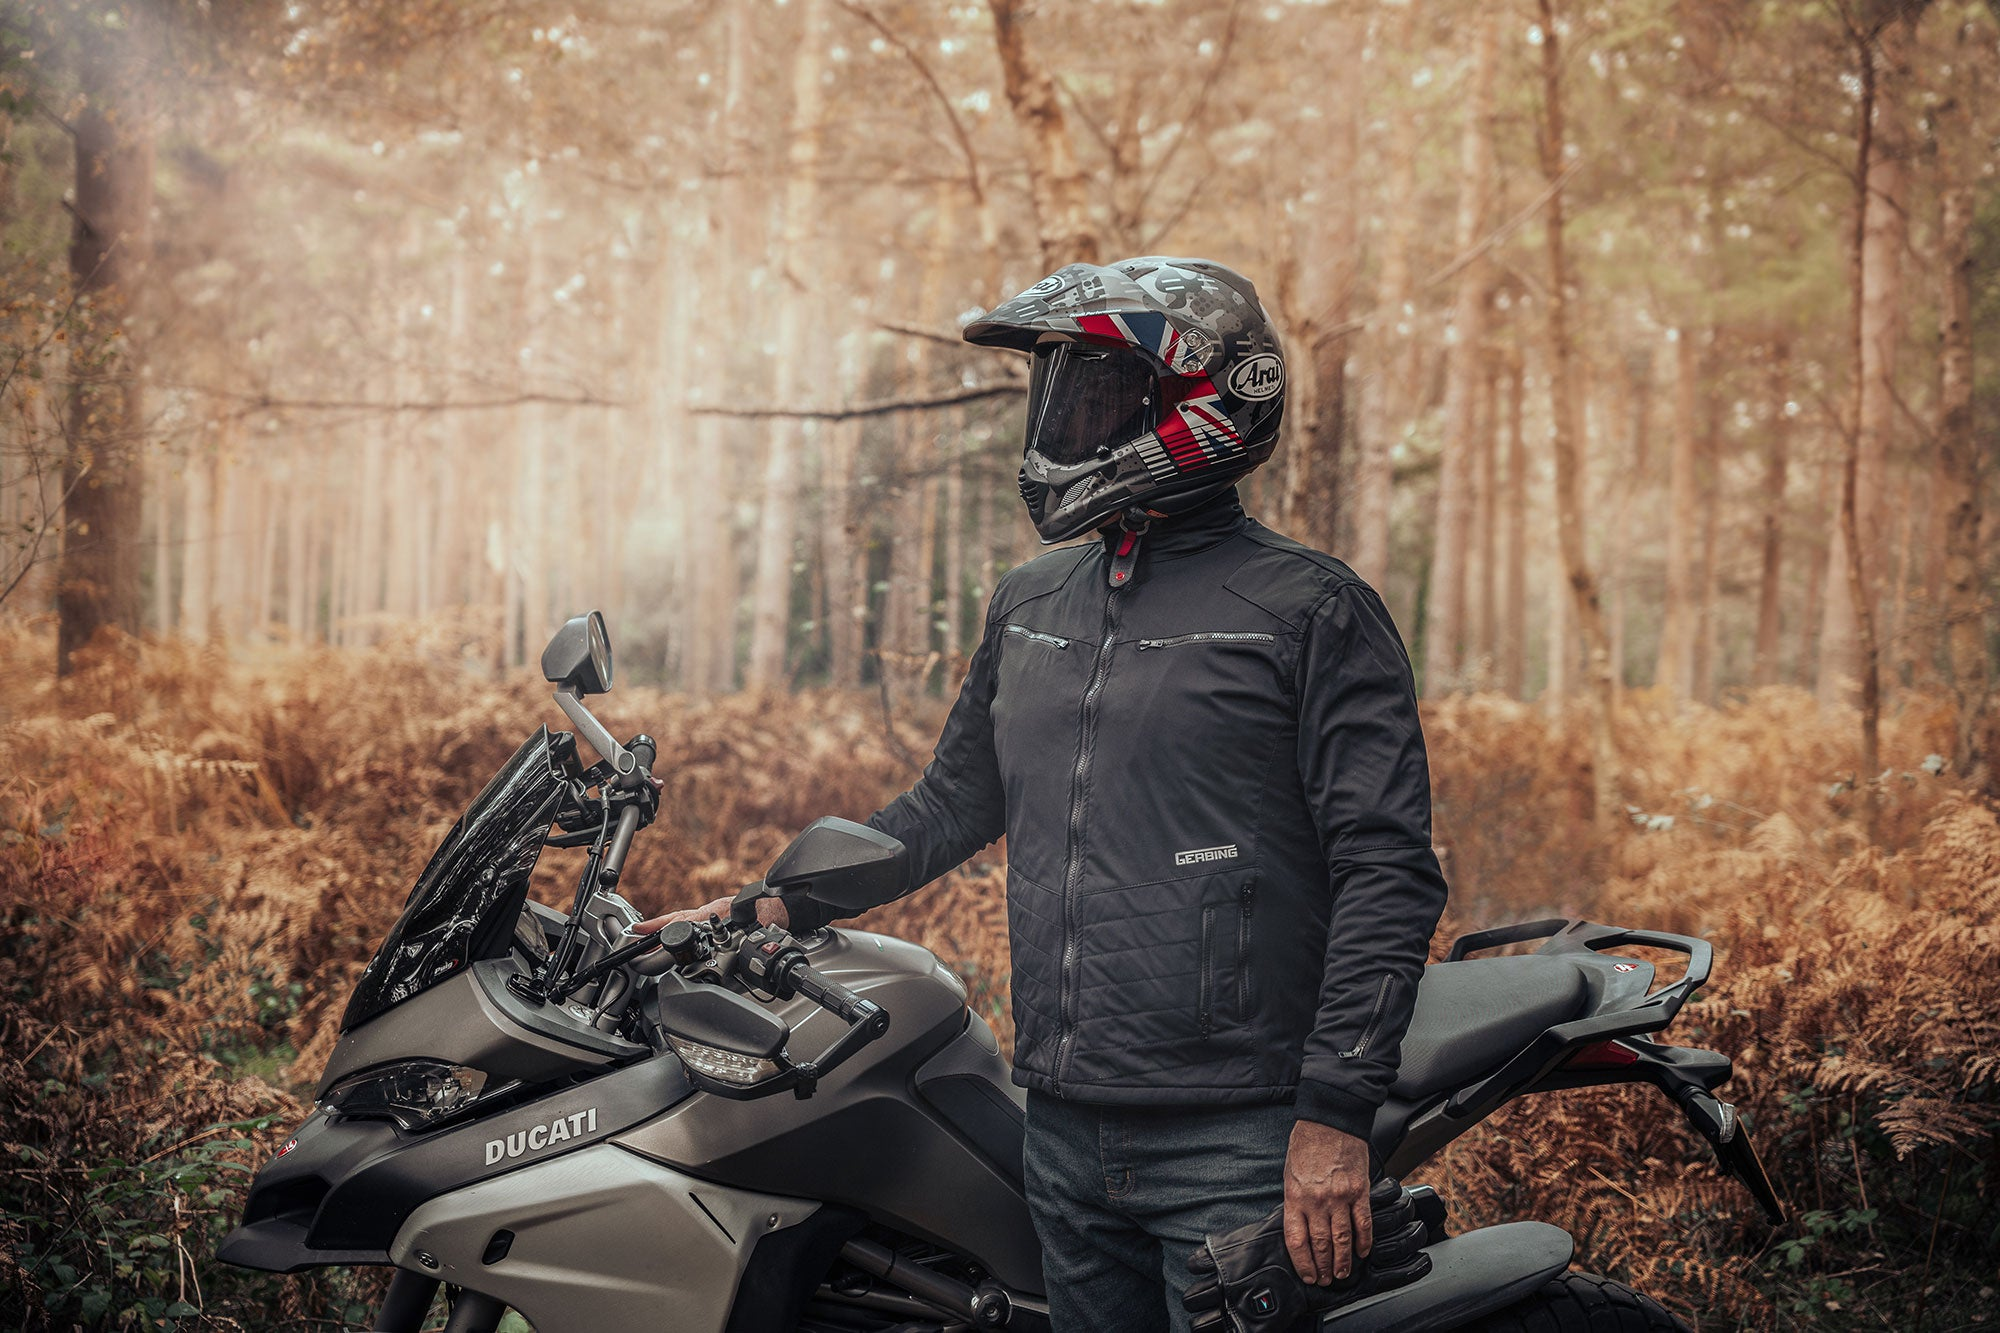 Gerbing Heated Motorcycle Jackets & Gerbing Heated Motorcycle Trousers - Gerbing Heated Motorcycle Clothing